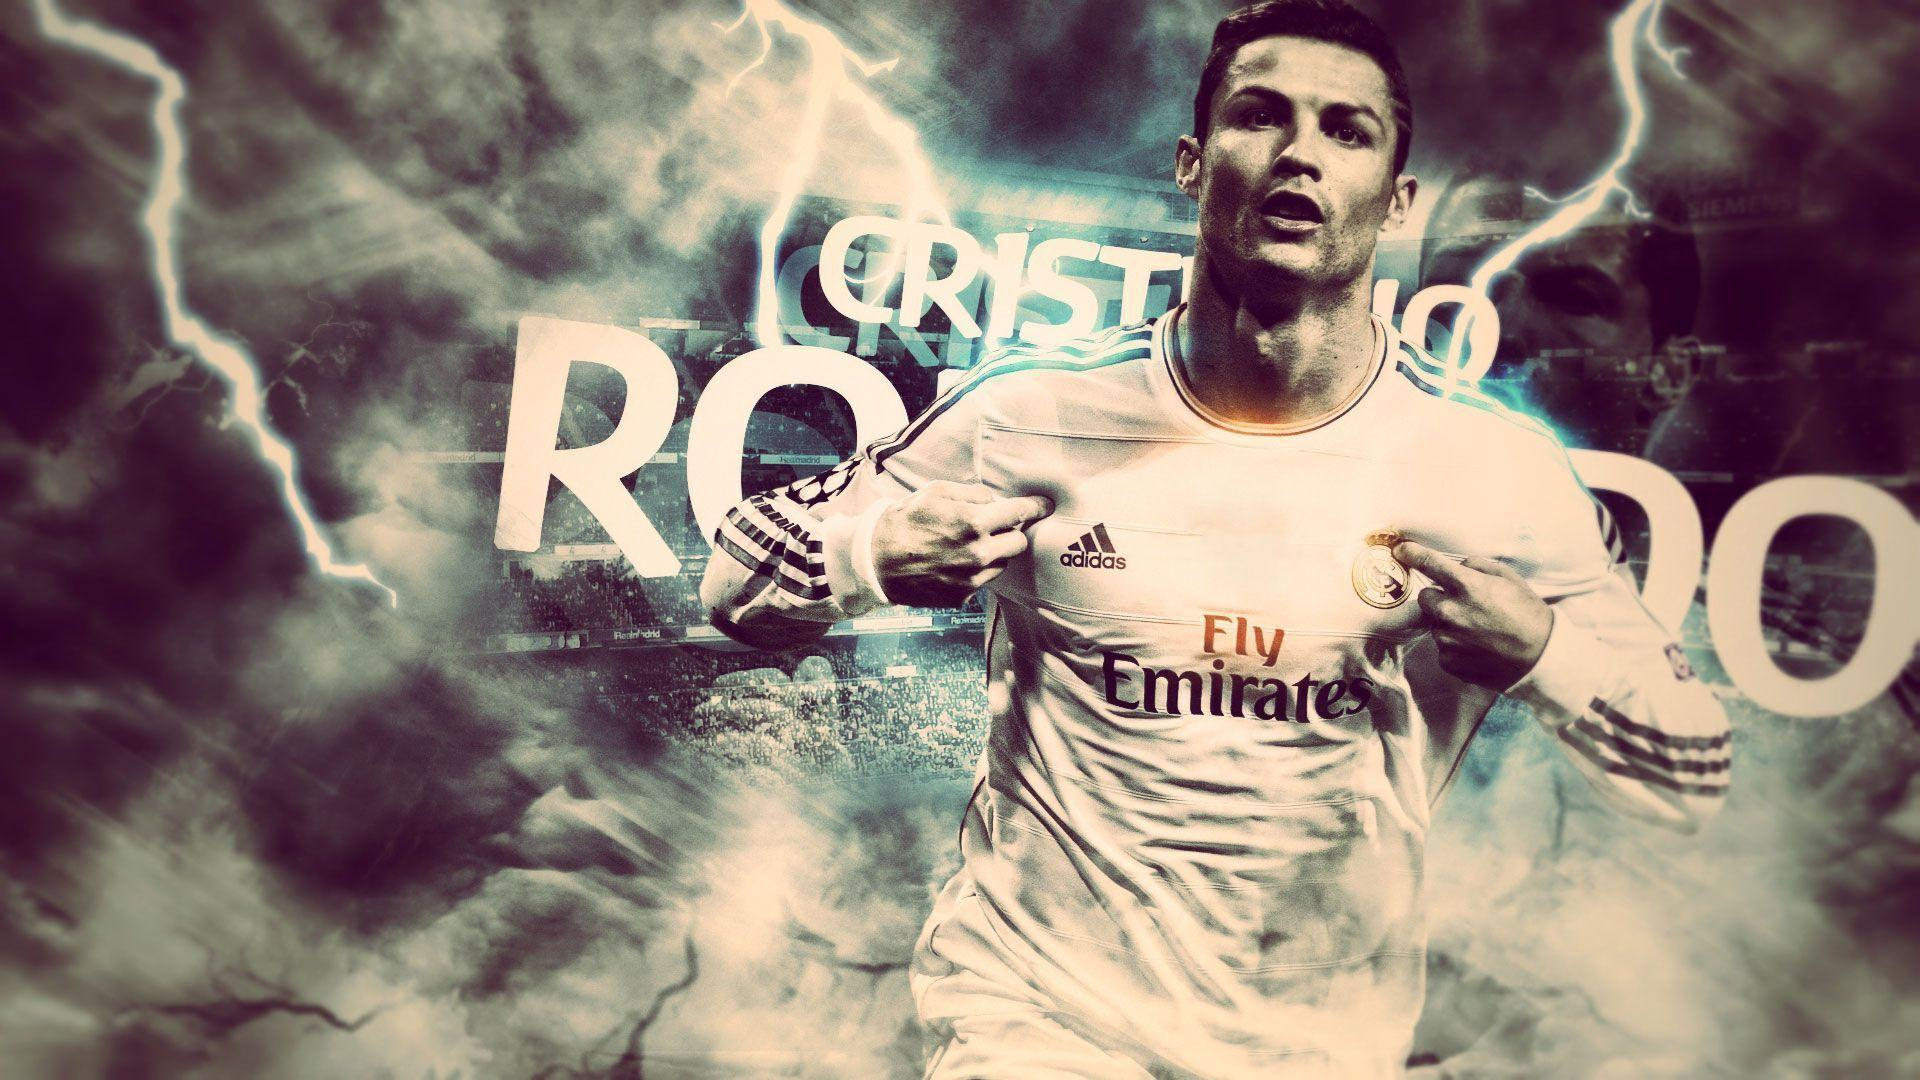 Cristiano Ronaldo CR7 2014 Wallpapers Wide or HD